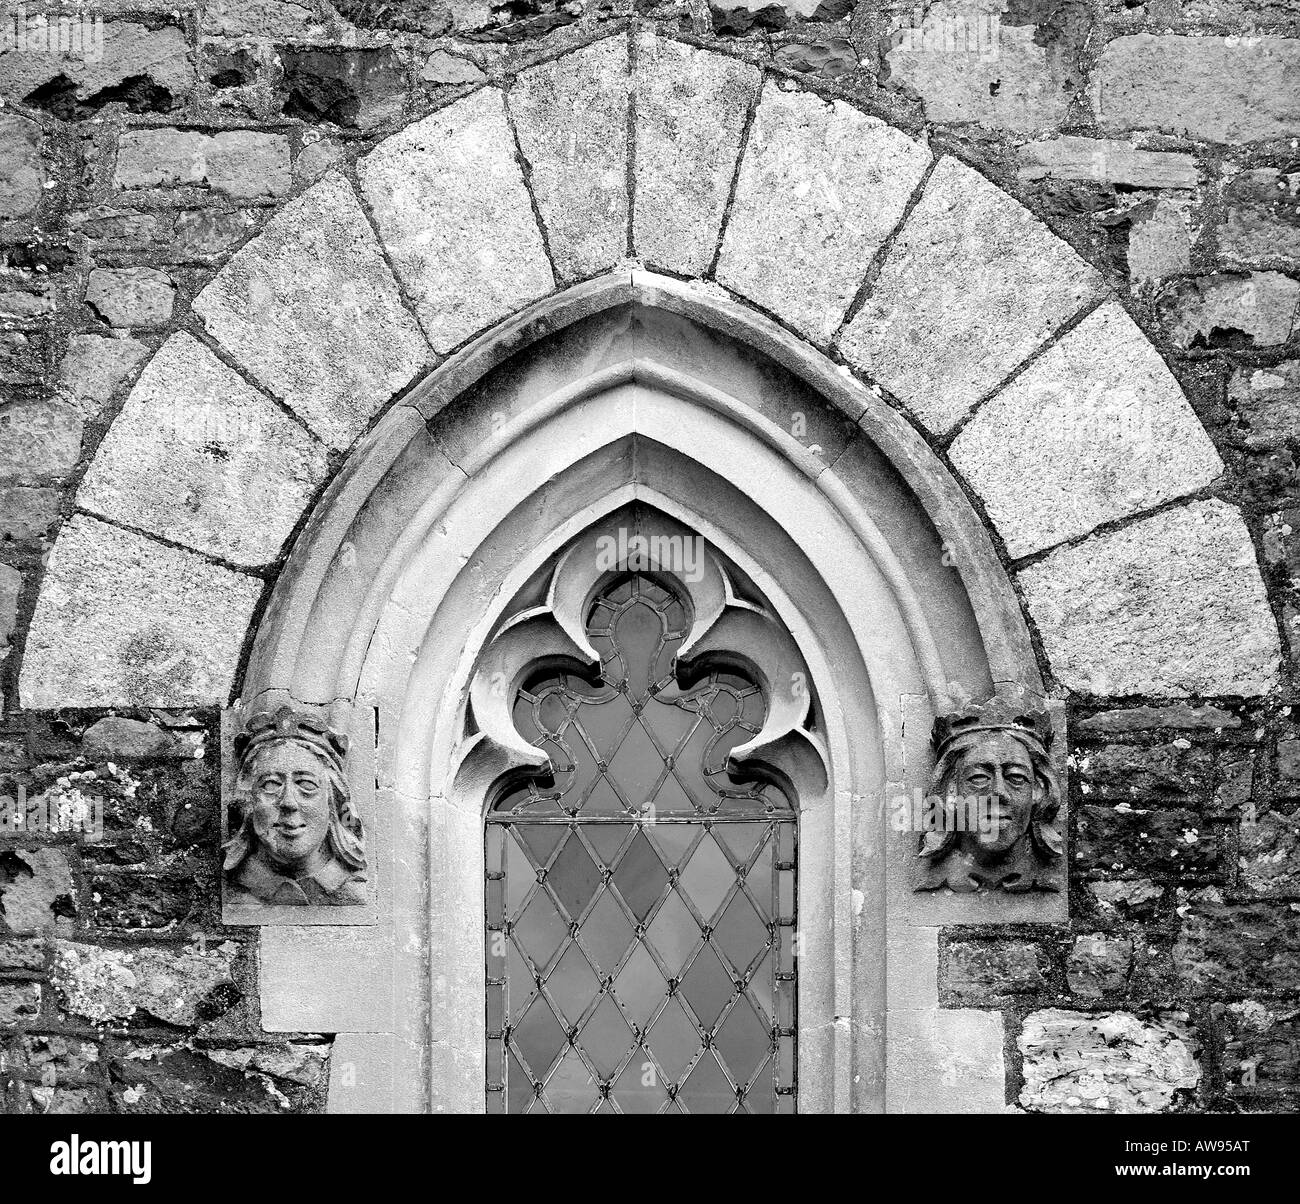 Architectural Detail Close Up Of A Gothic Arched Church Window With Stone Faces Each Side And Clear Leaded Glass In Monochrome